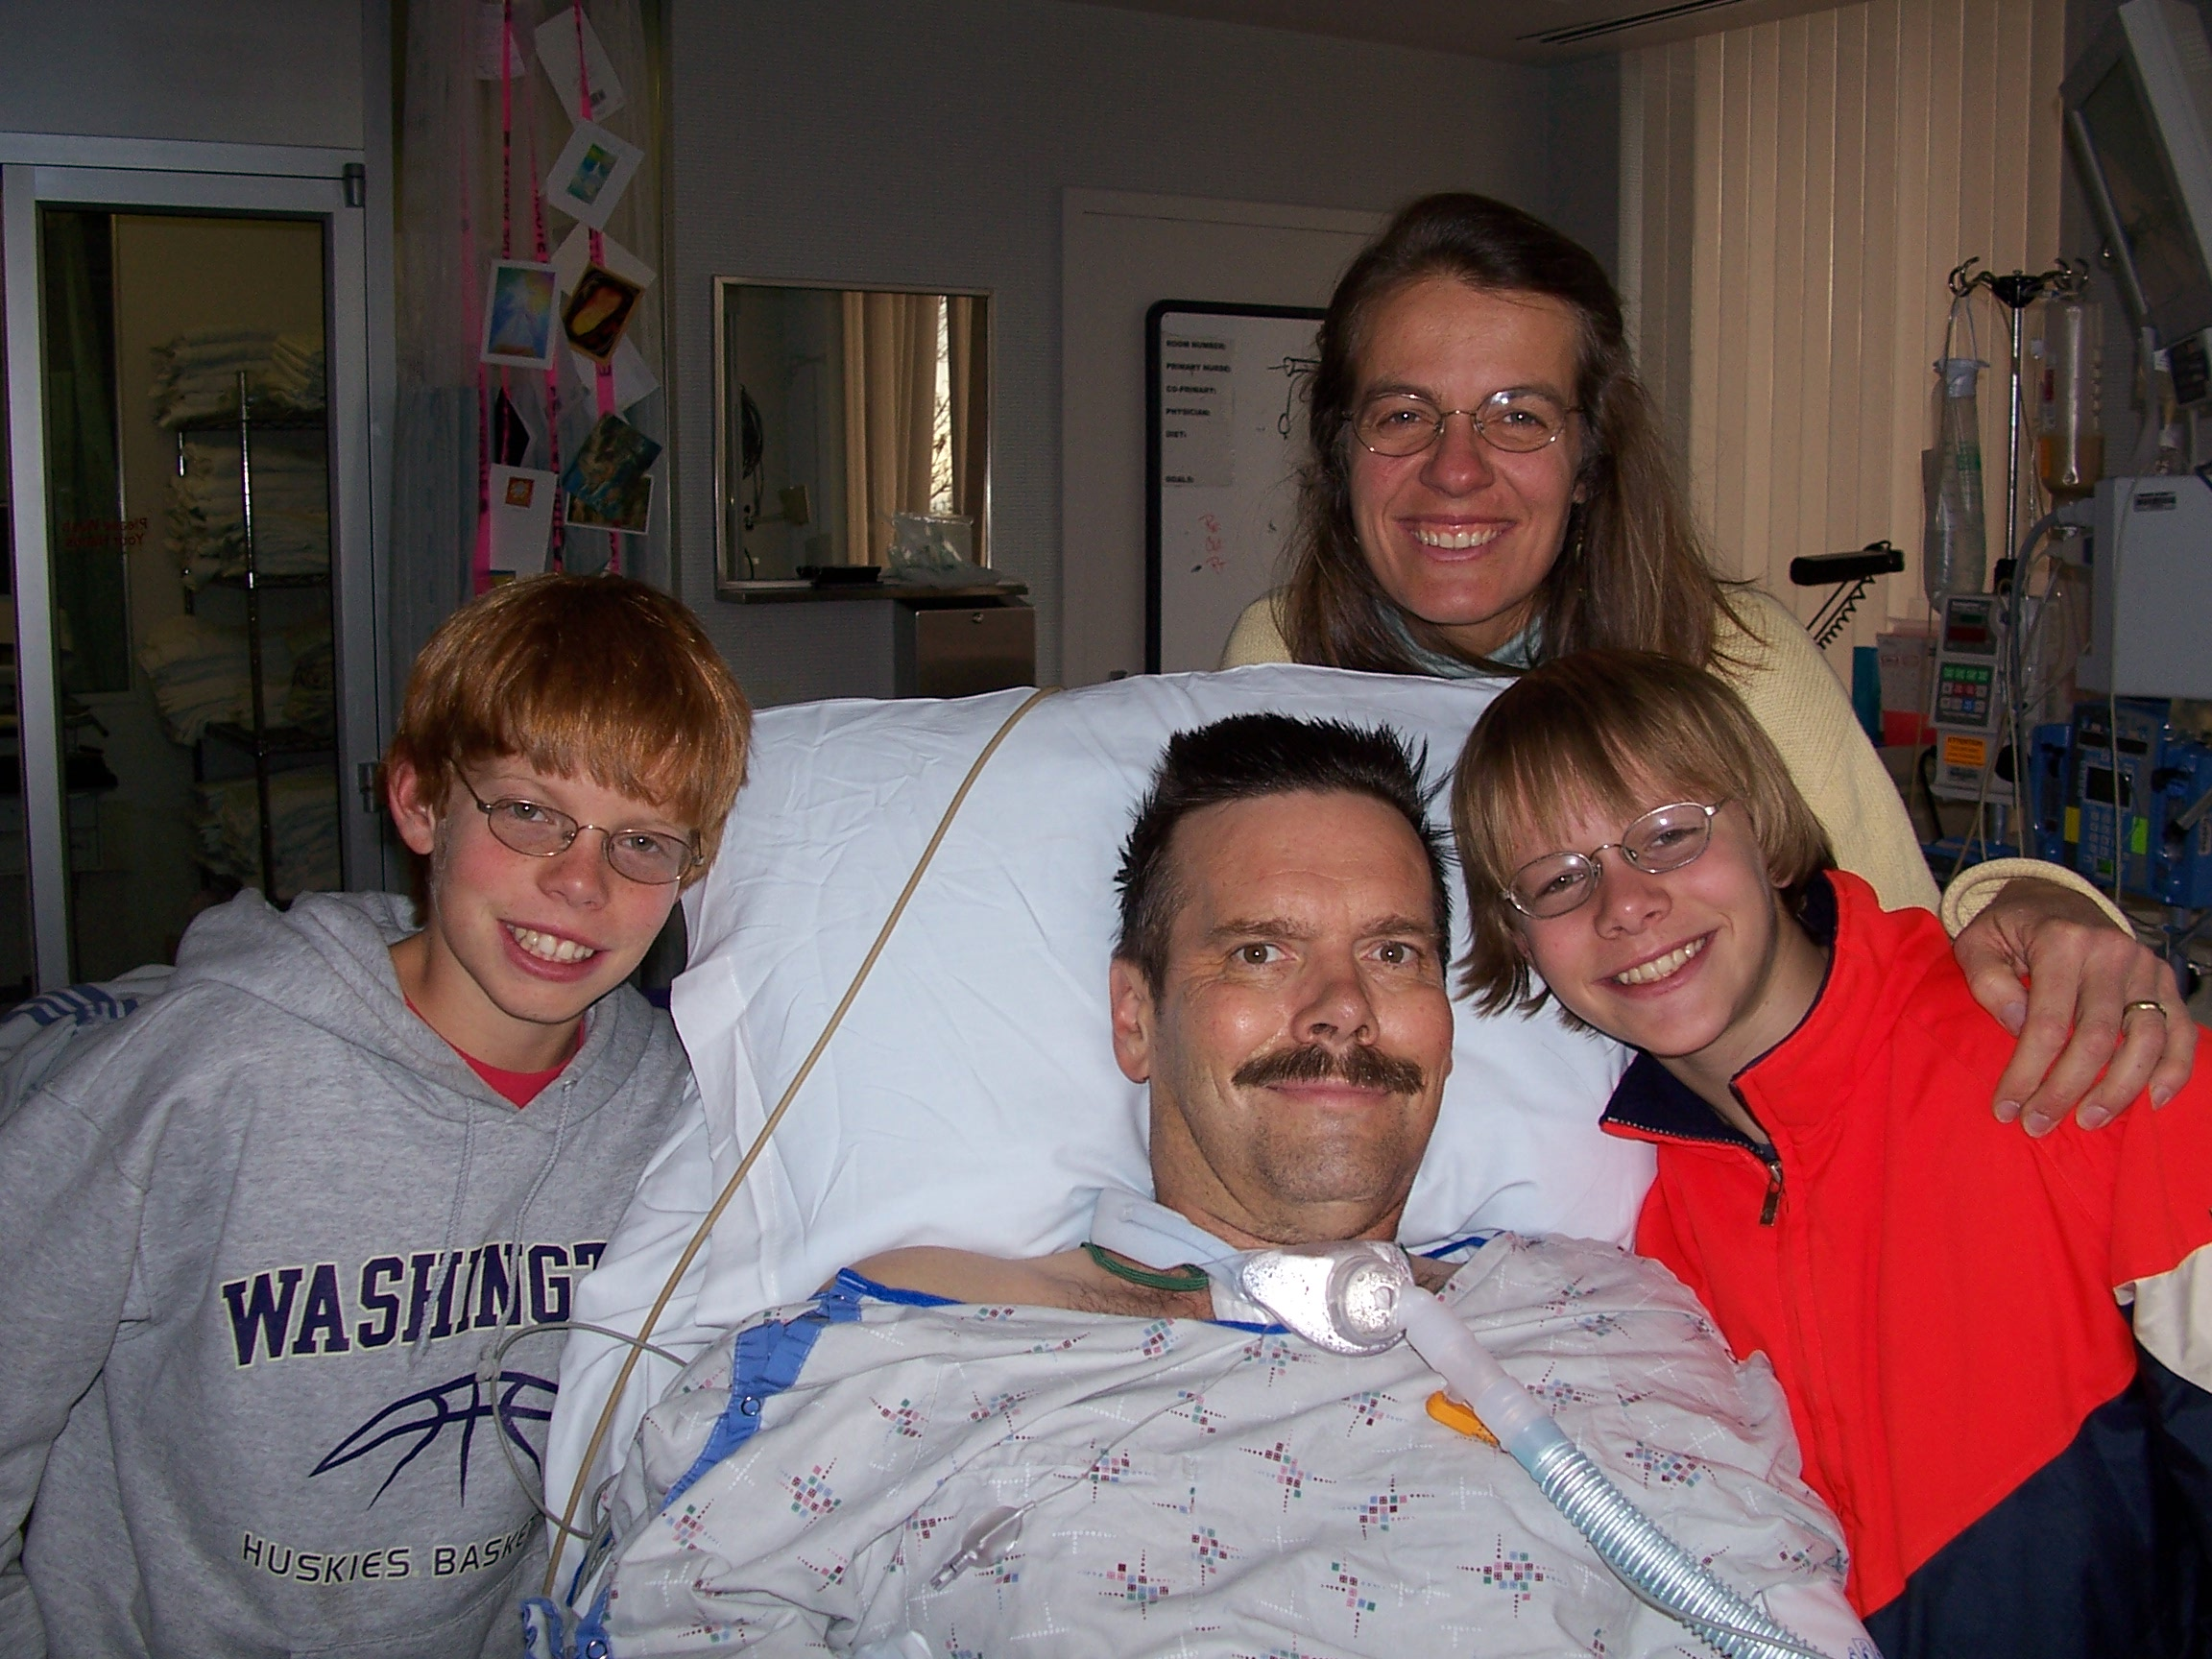 Geoff and his family in the hospital in 2005.